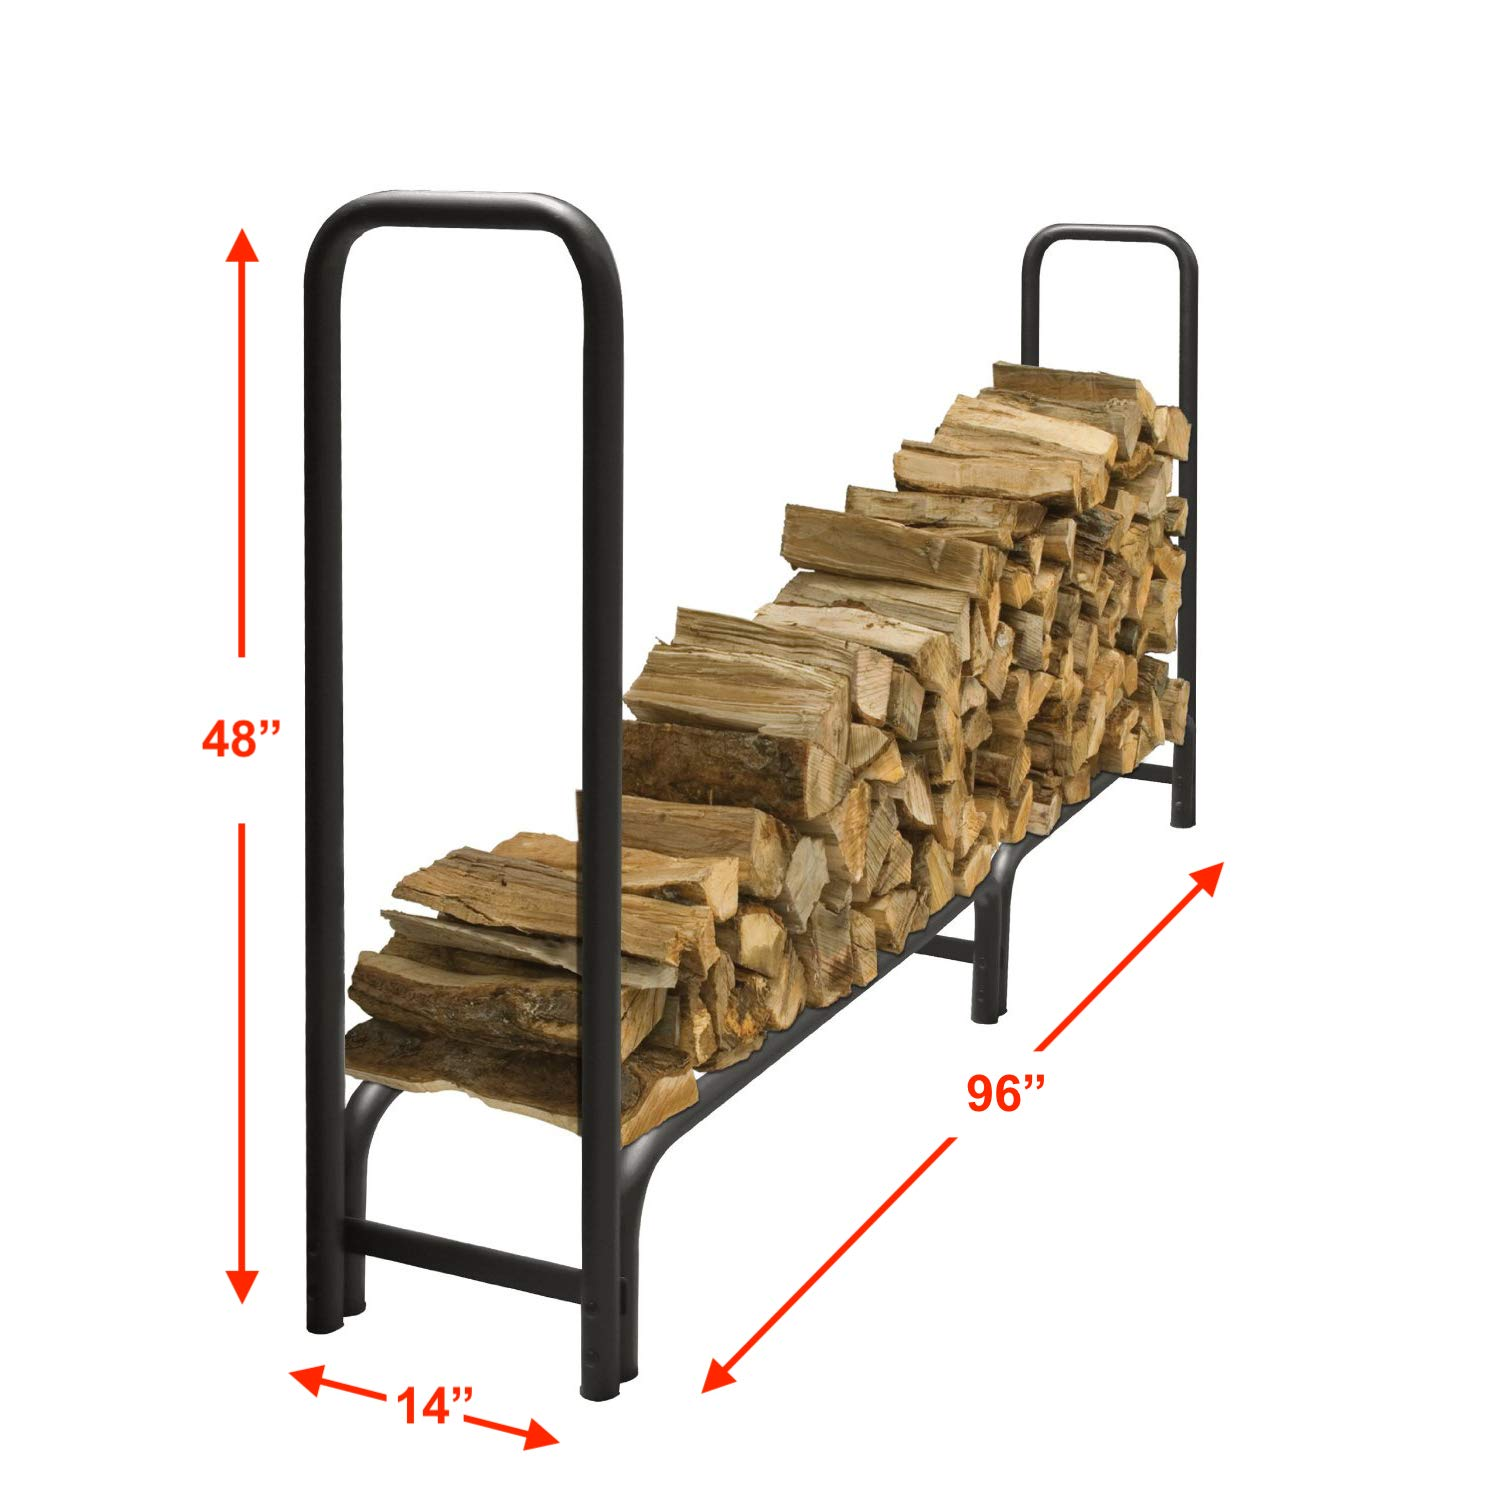 Fine Purrite Fire Wood Log Rack Heavy Duty Fireplace Firewood Holder With Free Water Resistant Cover For Outdoor Storage Gmtry Best Dining Table And Chair Ideas Images Gmtryco